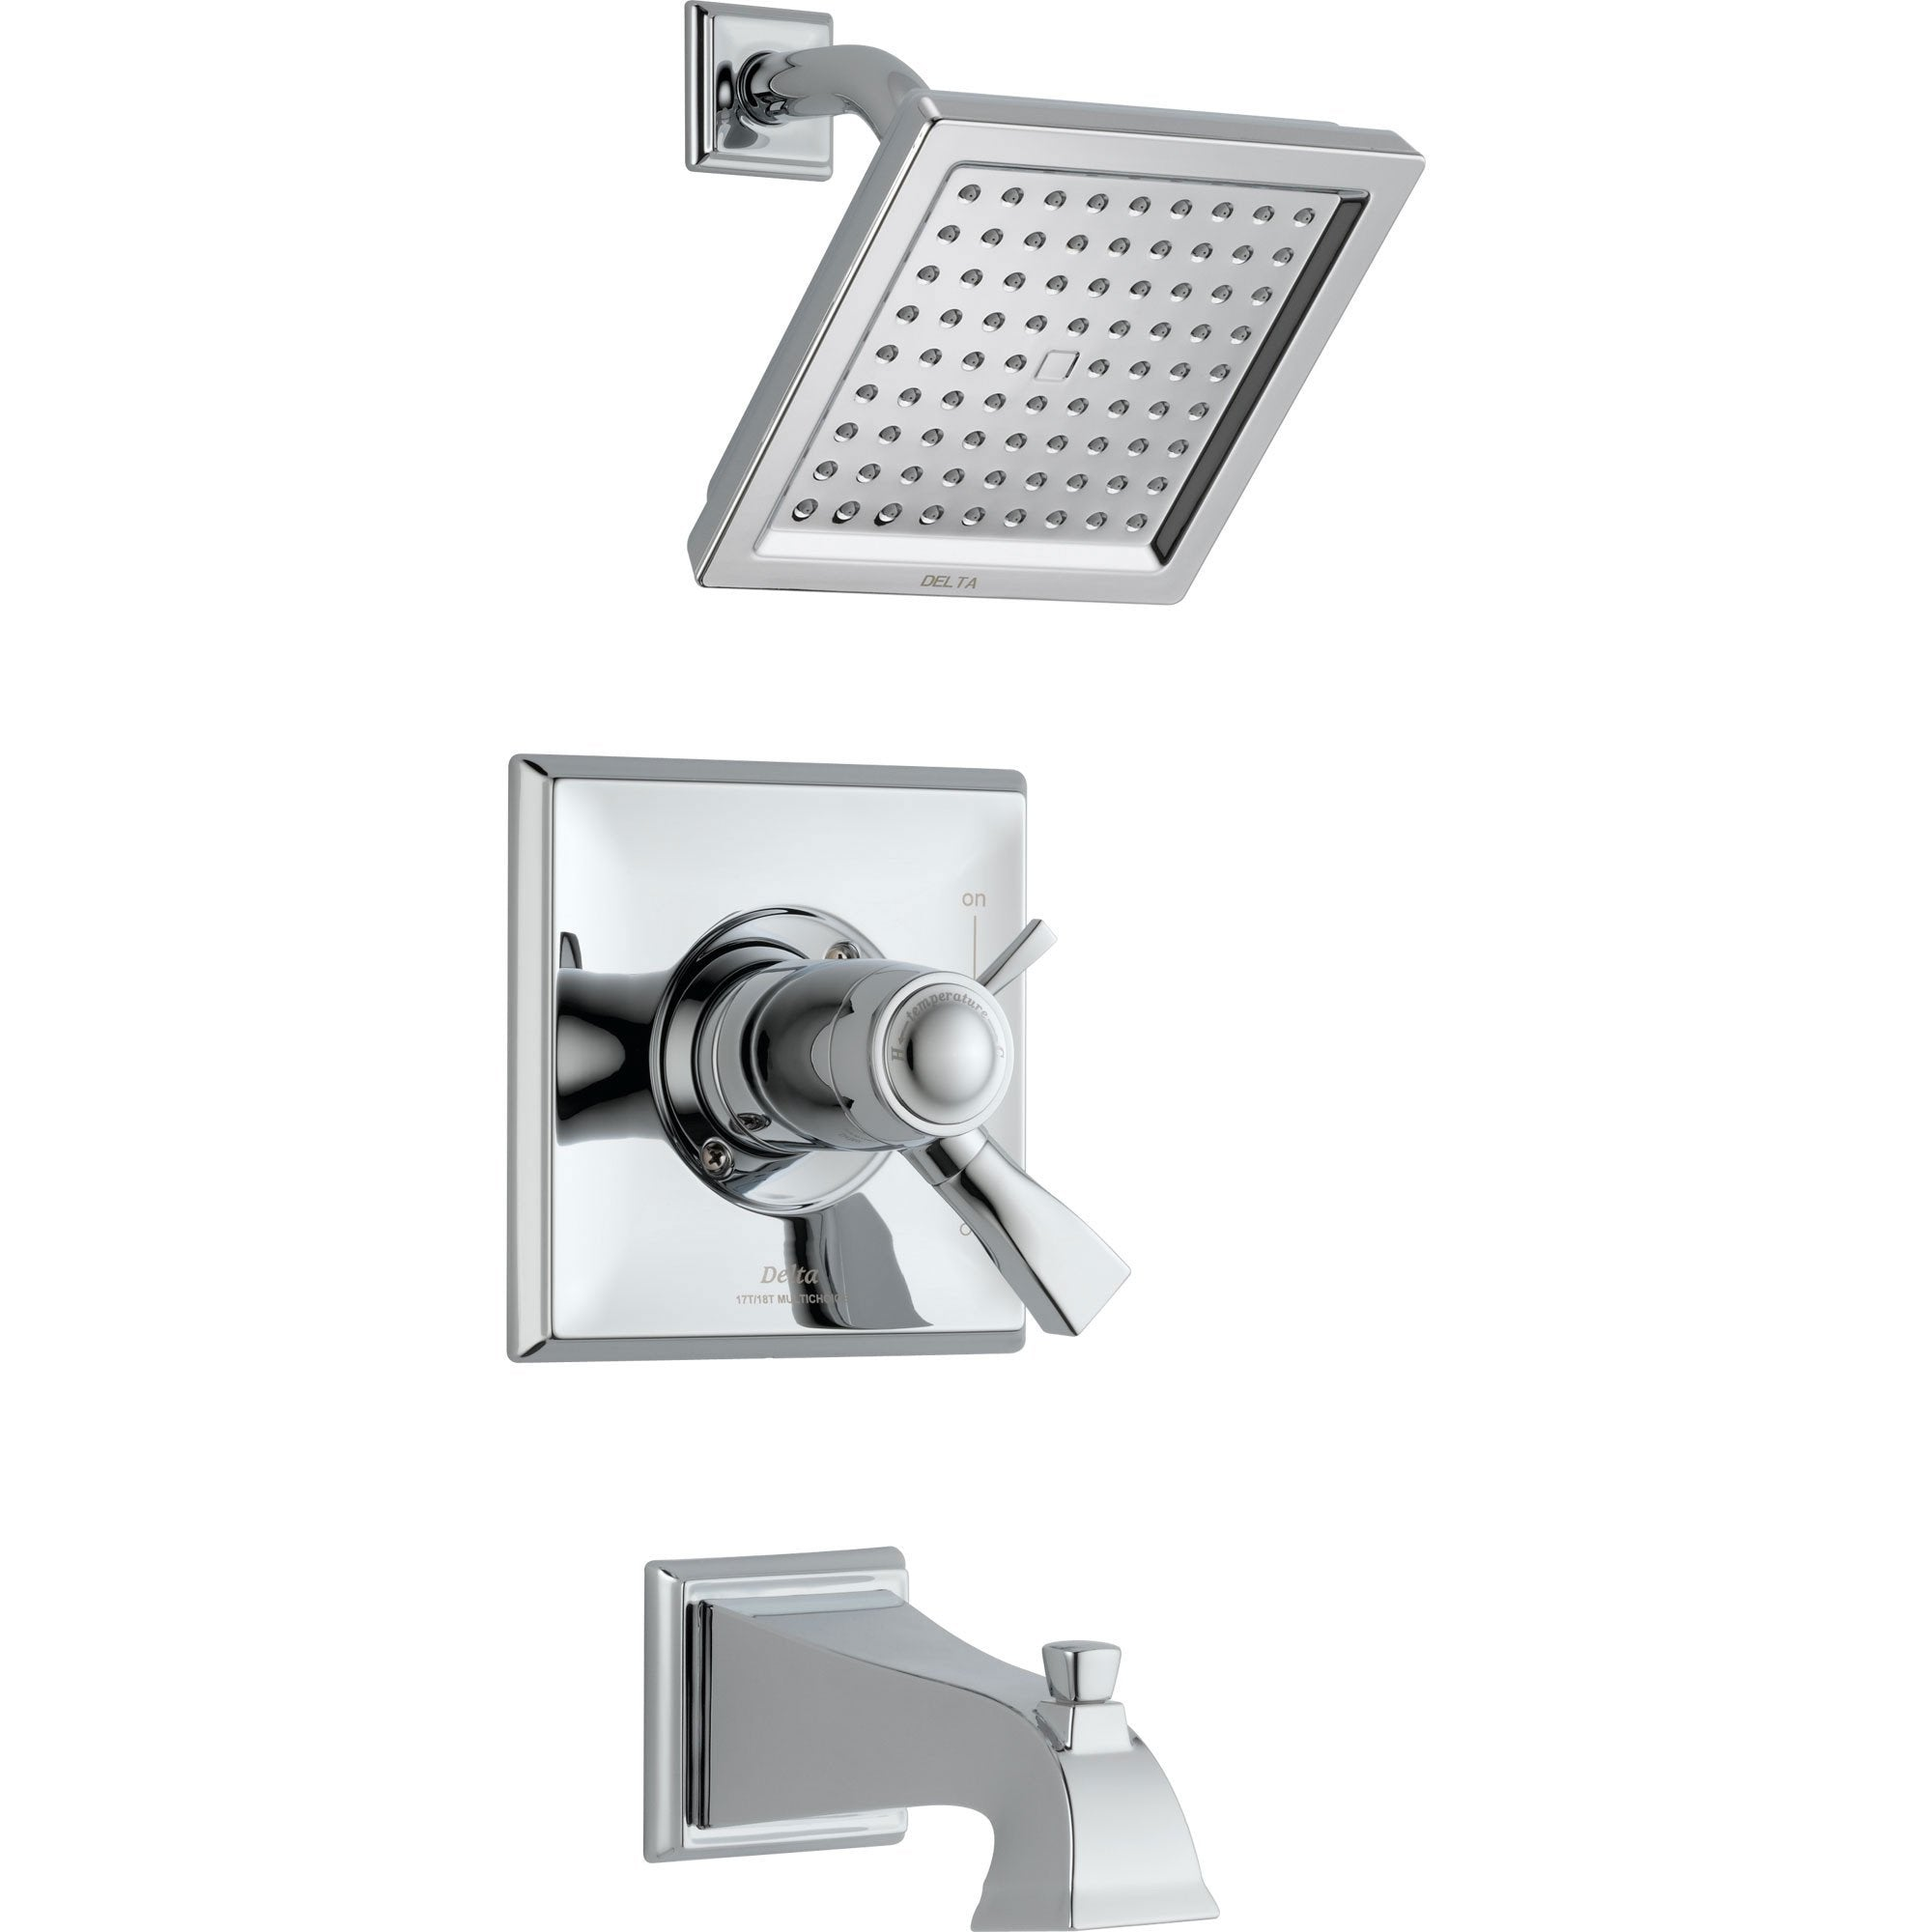 Delta Dryden Thermostatic Dual Control Chrome Tub and Shower with Valve D525V